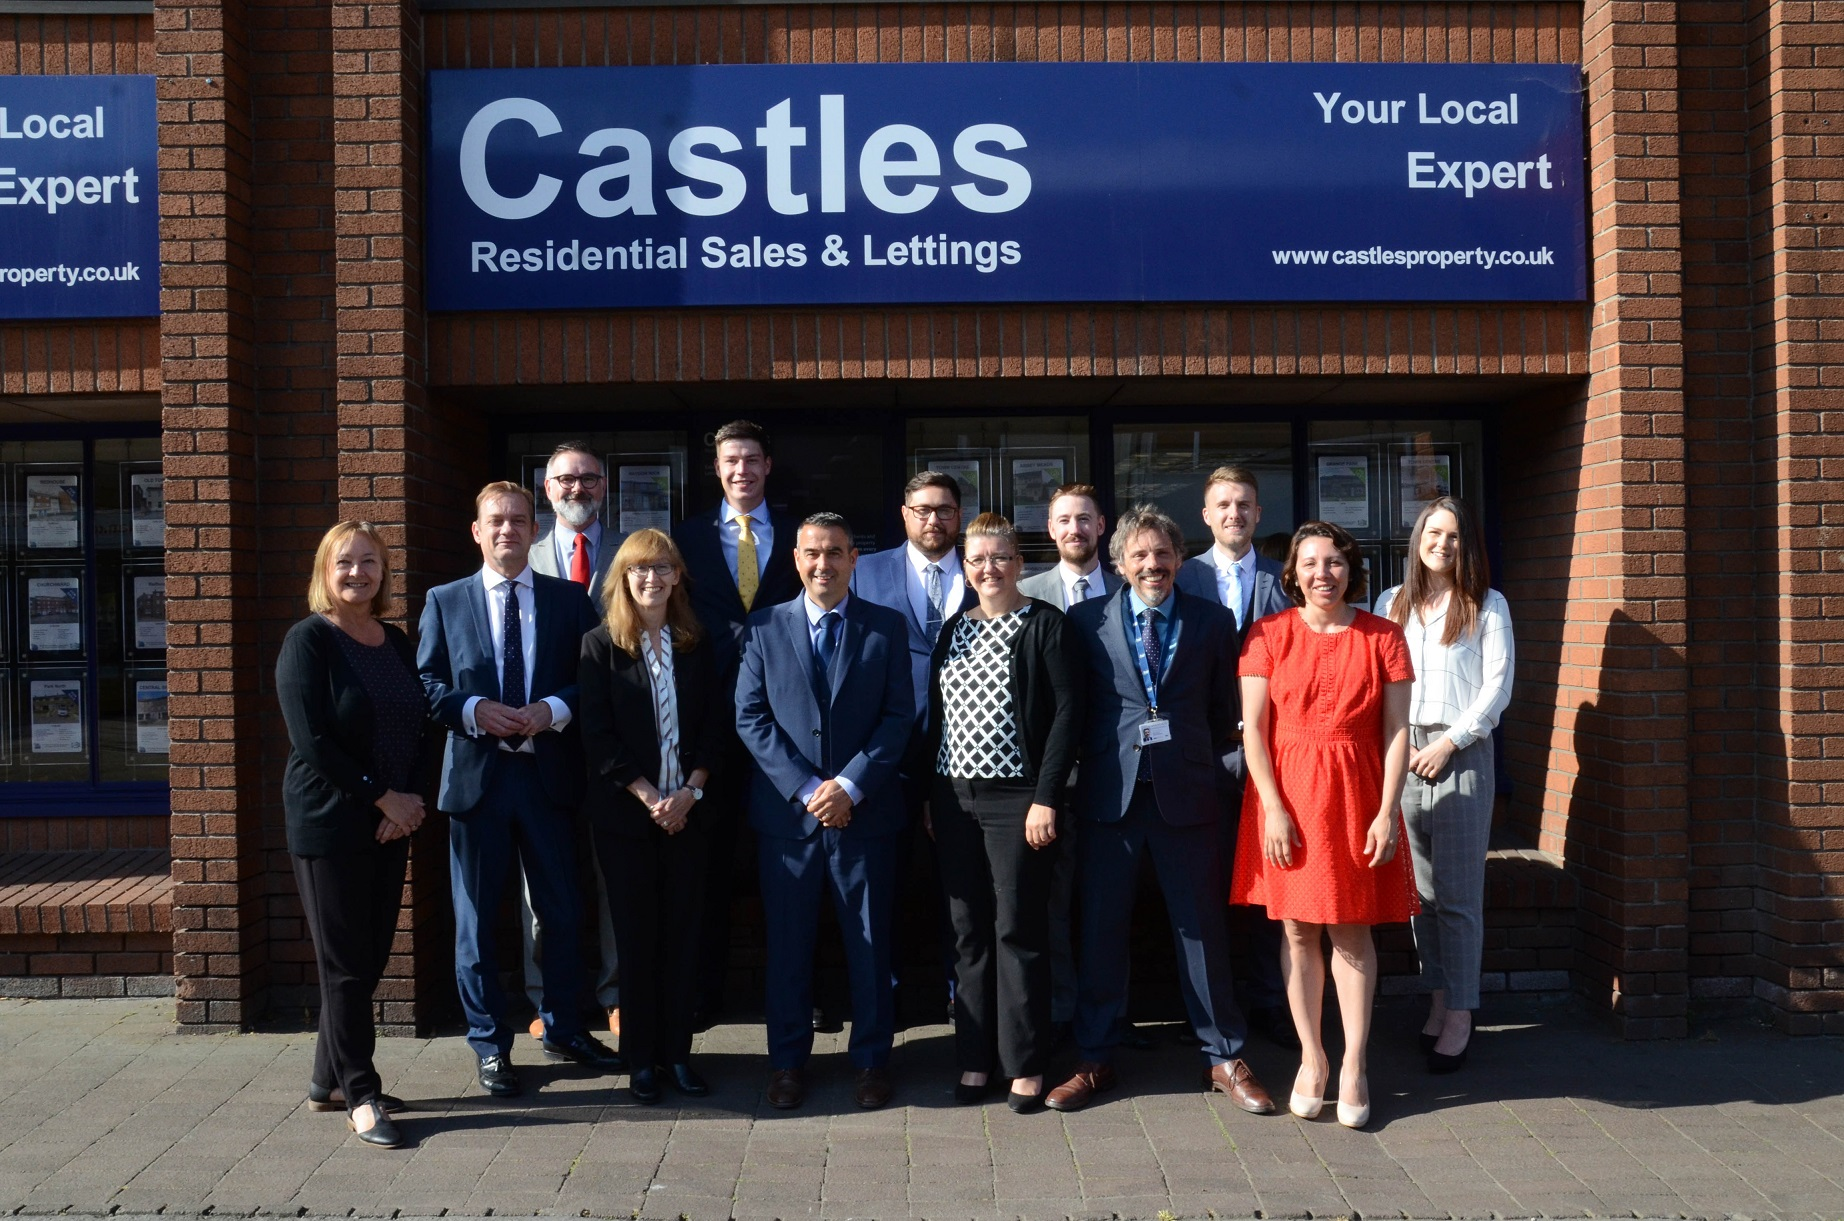 Castles Residential Sales & Lettings Shortlisted For 'Best In Region' Award